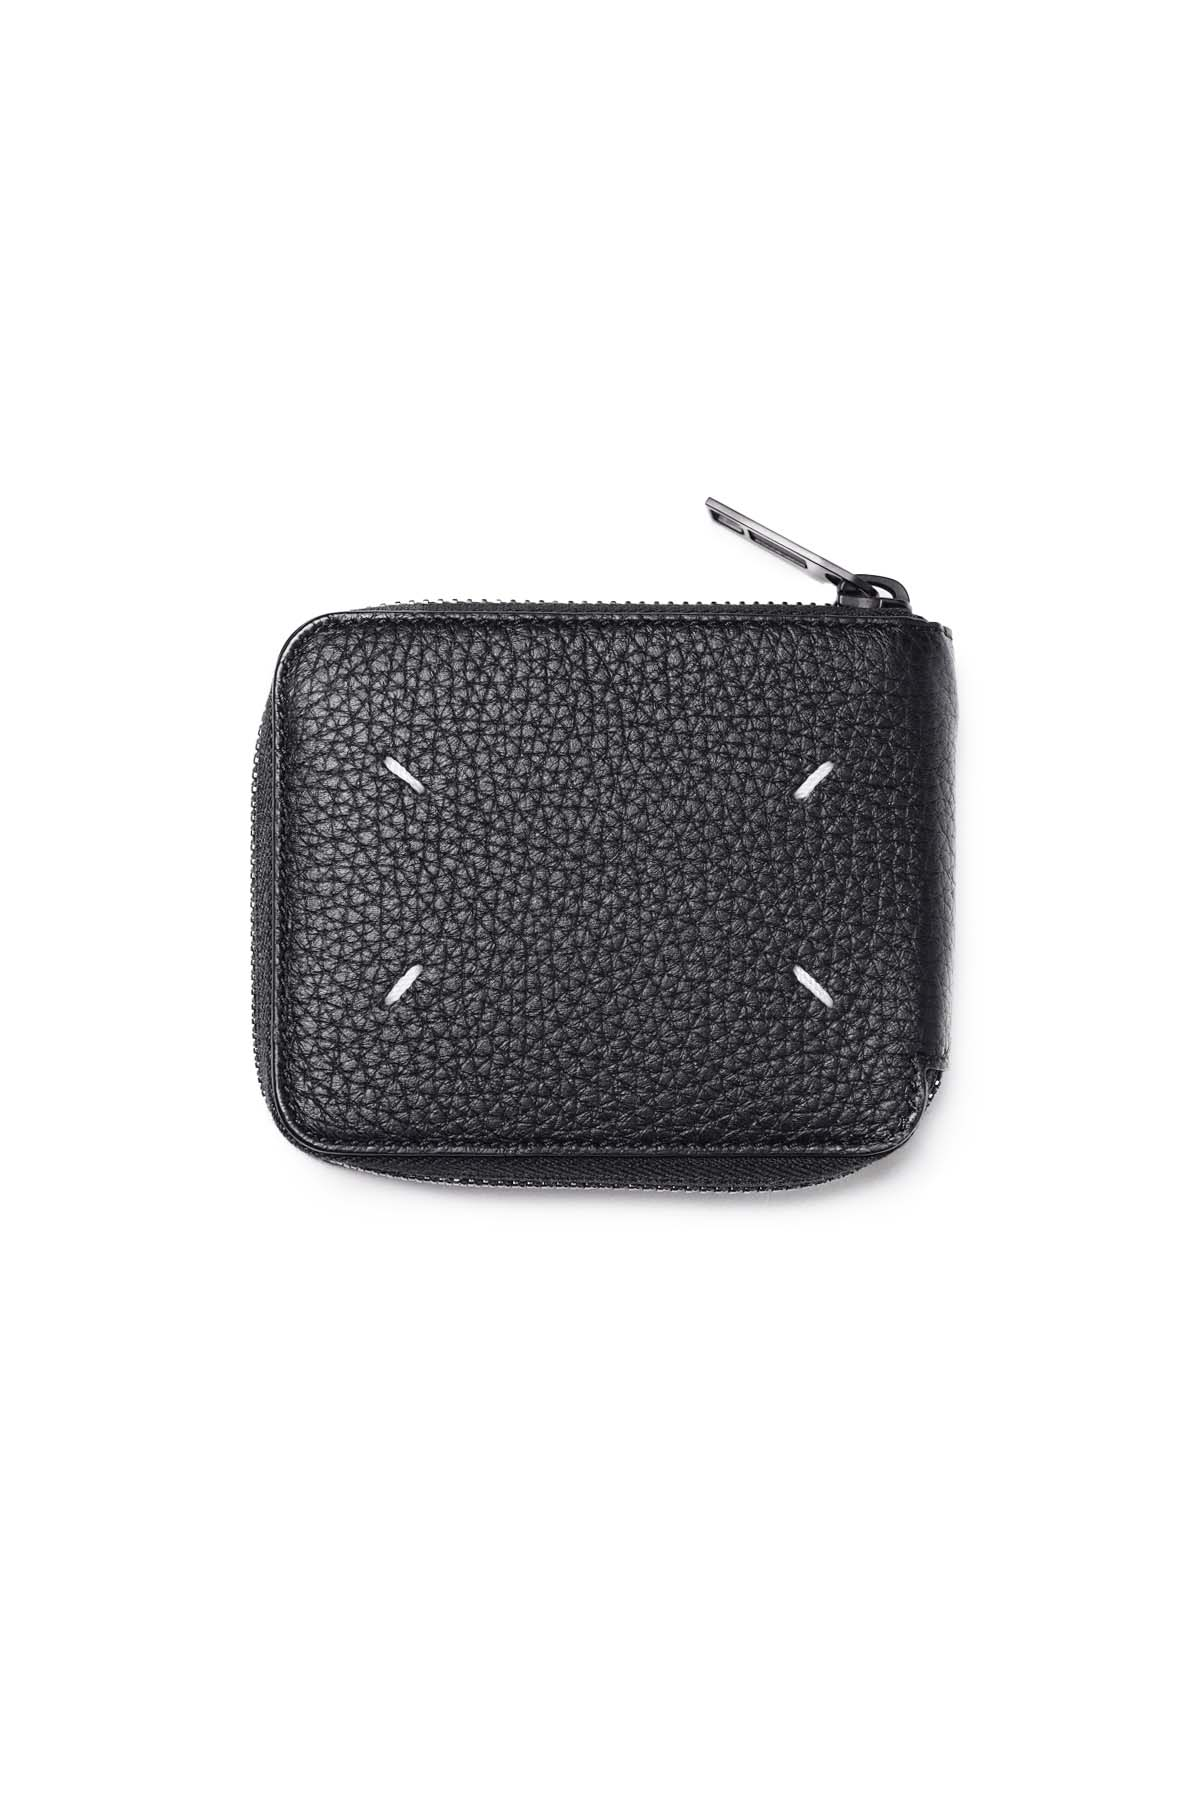 Round Zip Mini Case[2021SS]